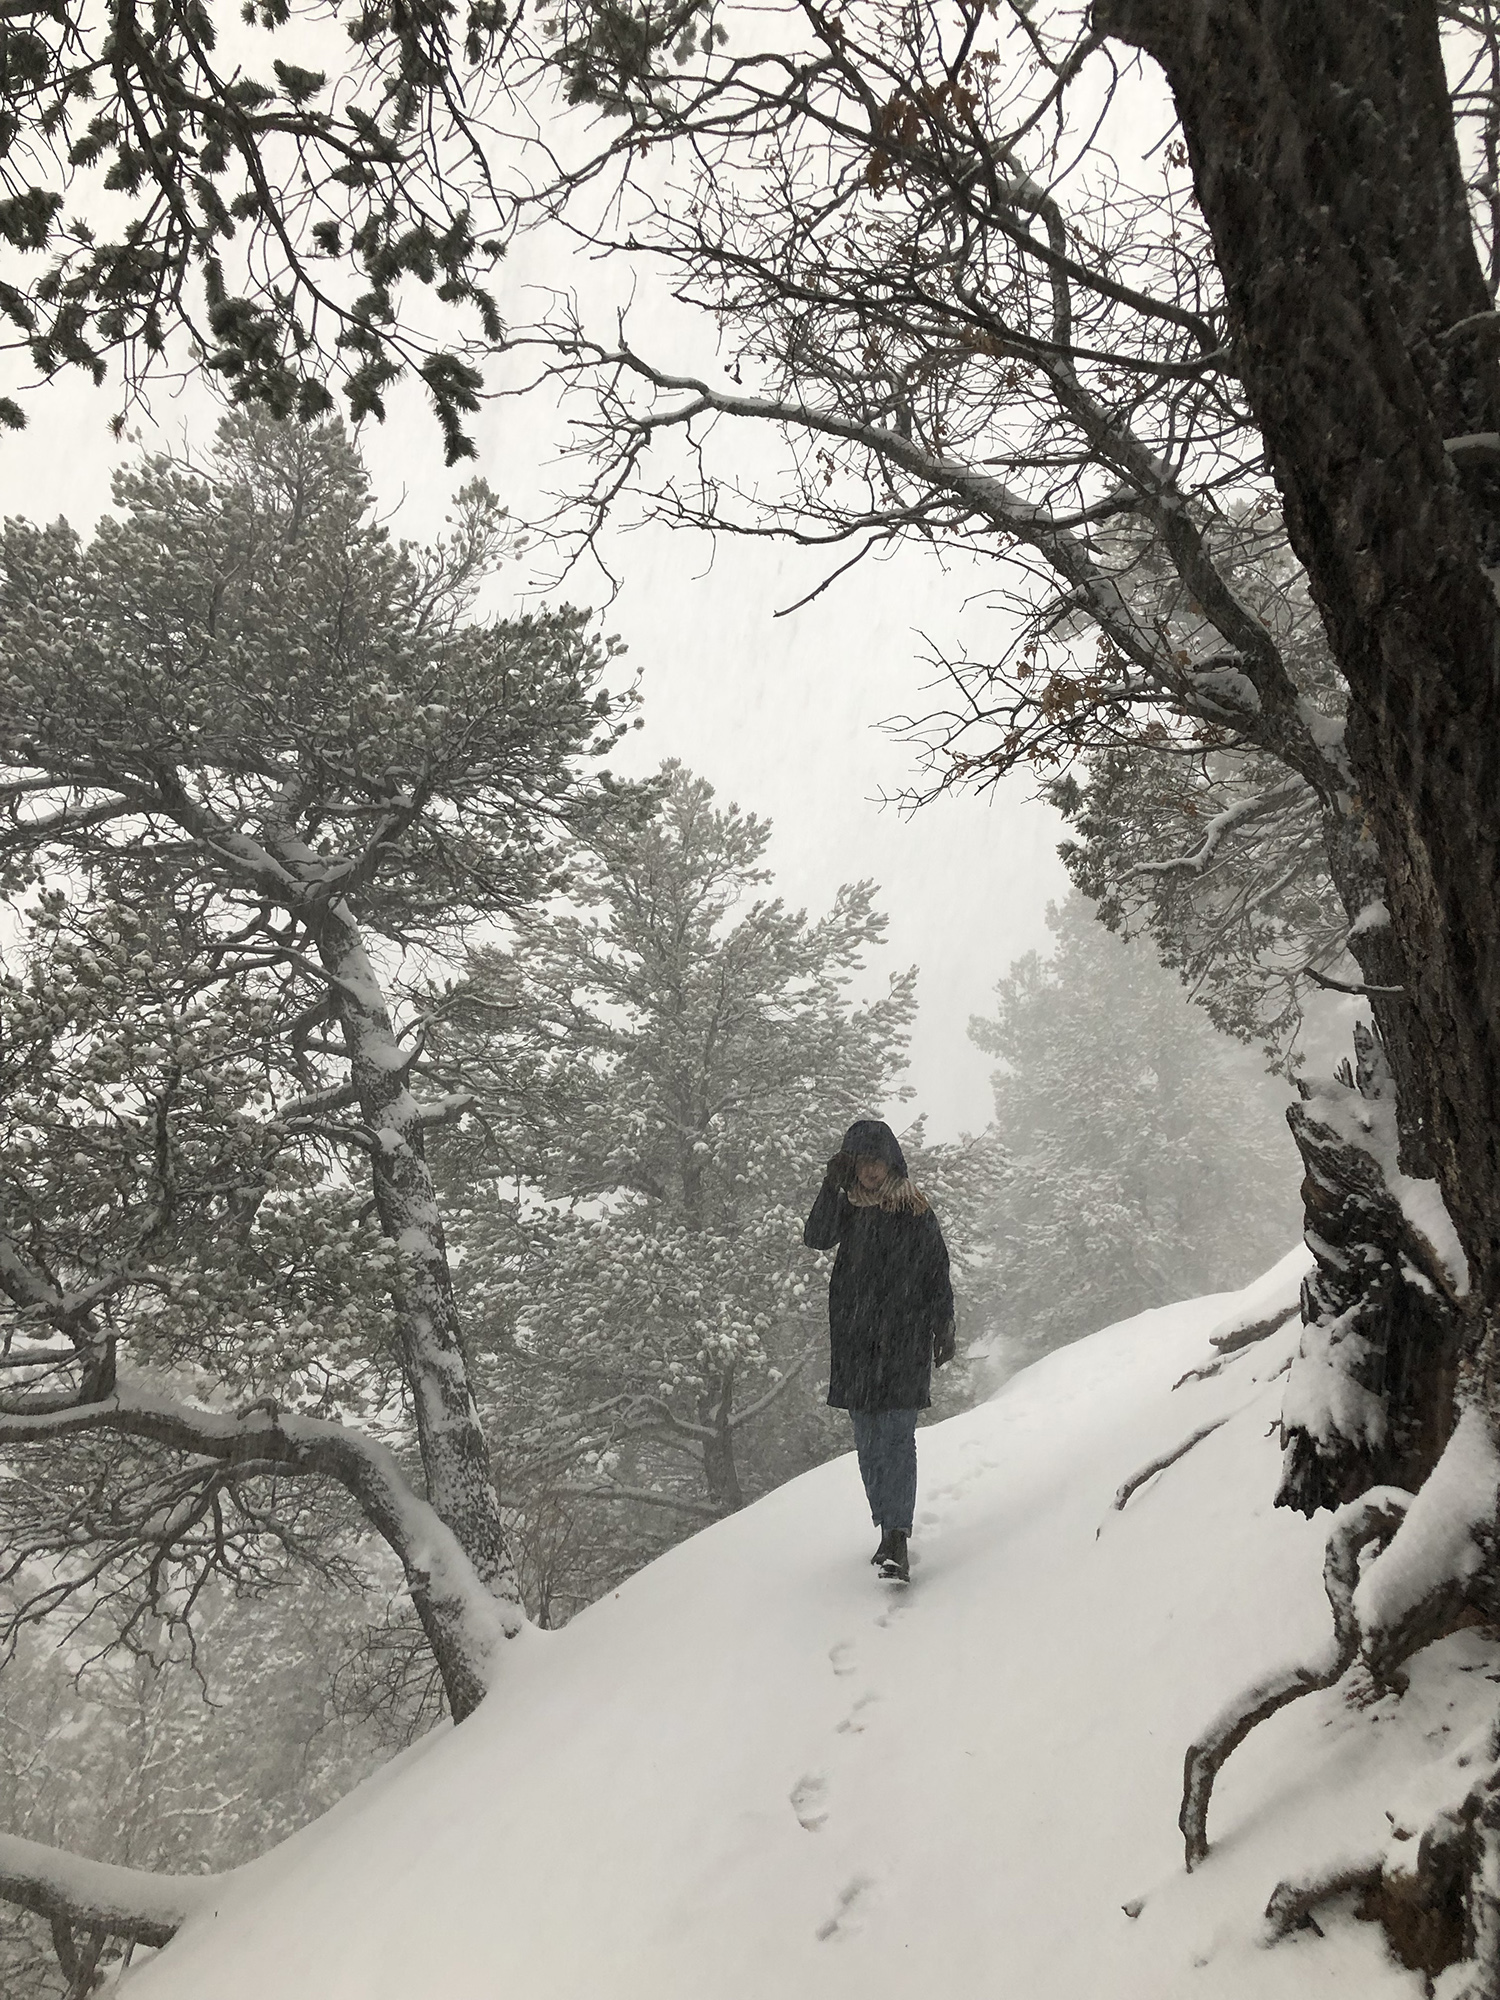 snowstorm on the mountain